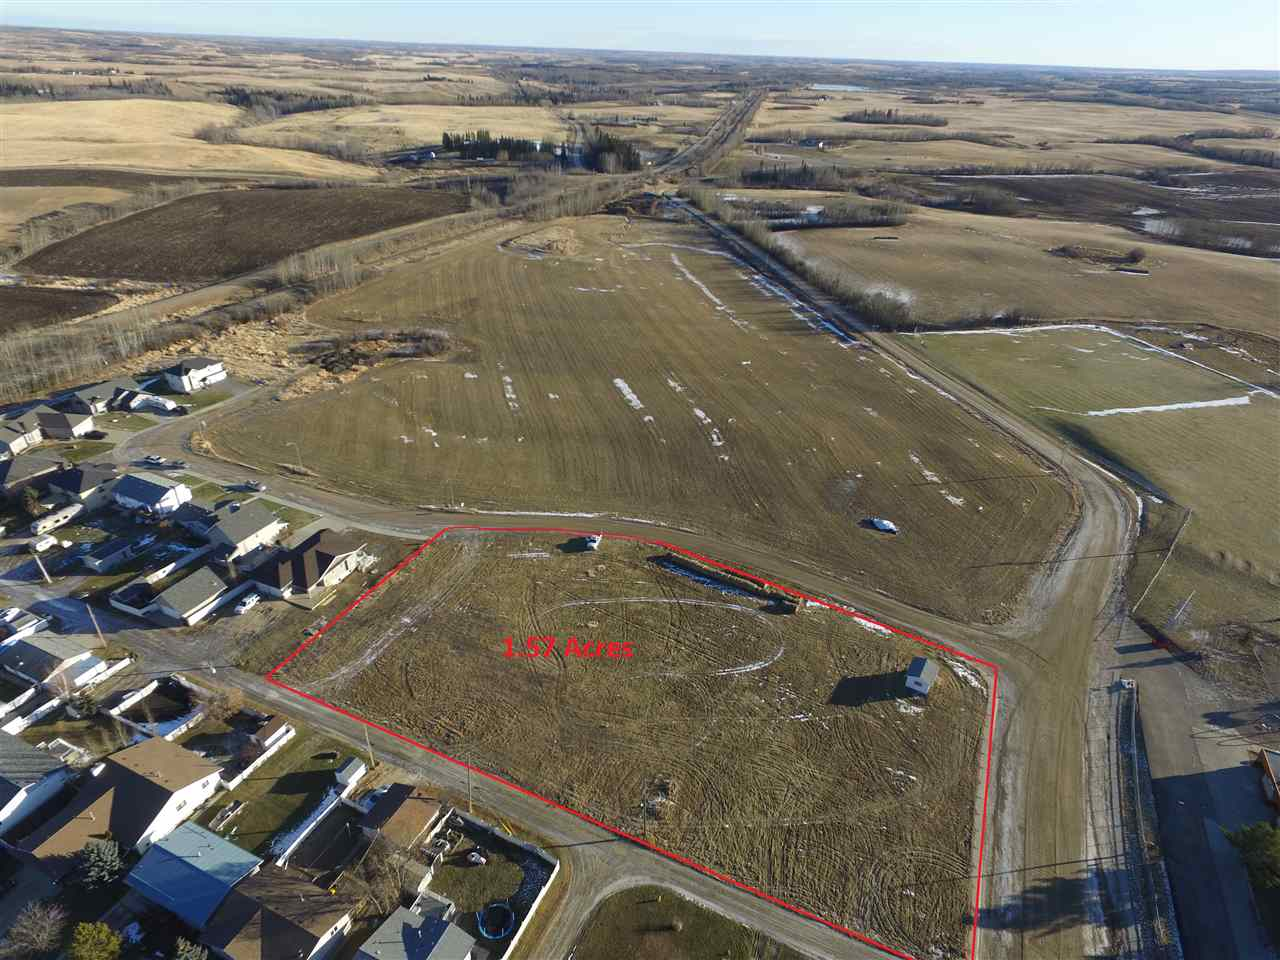 Investor Alert! Prime residential lot in the growing town of Mayerthorpe. This 1.57 acre lot is zoned for multi-family residential. Town is investor friendly. Bring your ideas!